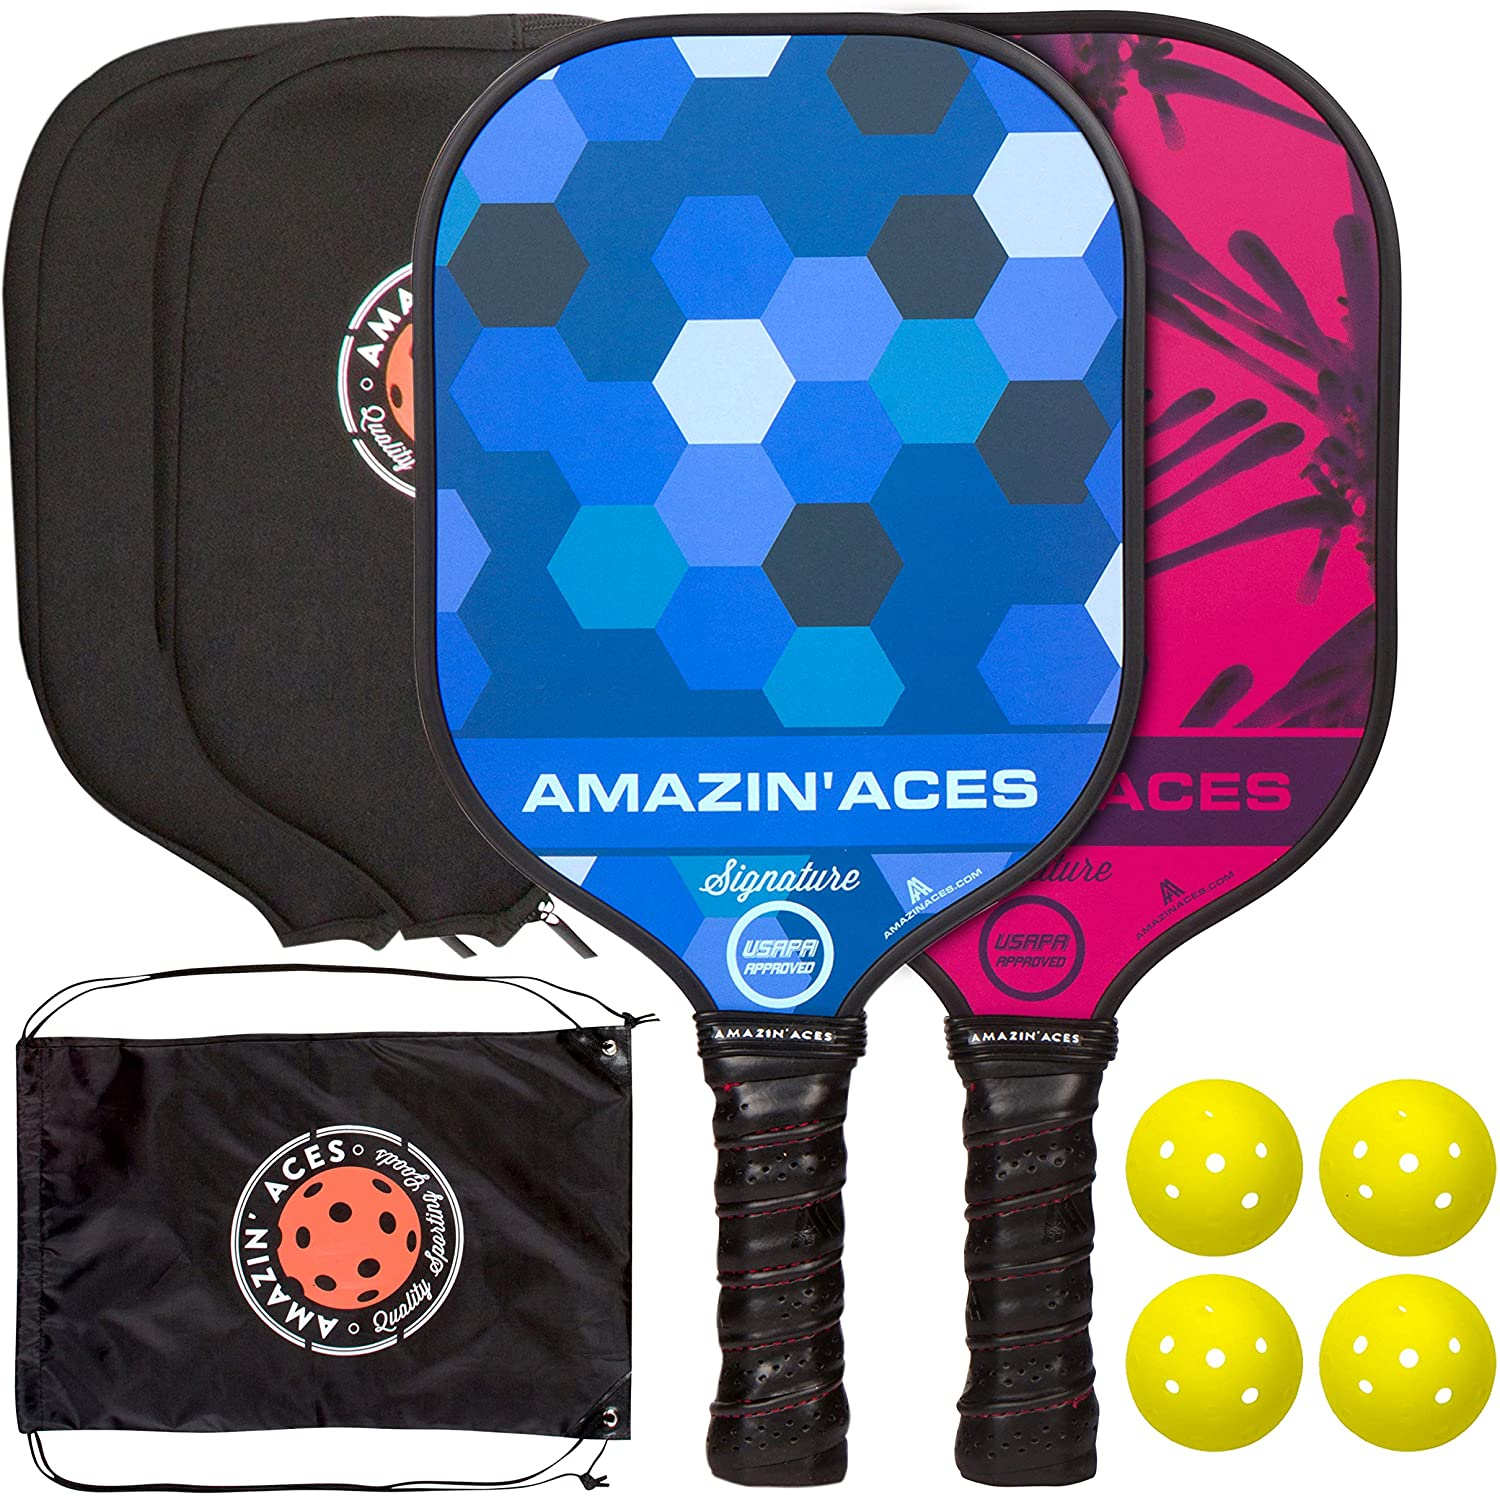 Amazin' Aces Signature Pickleball Paddle Set